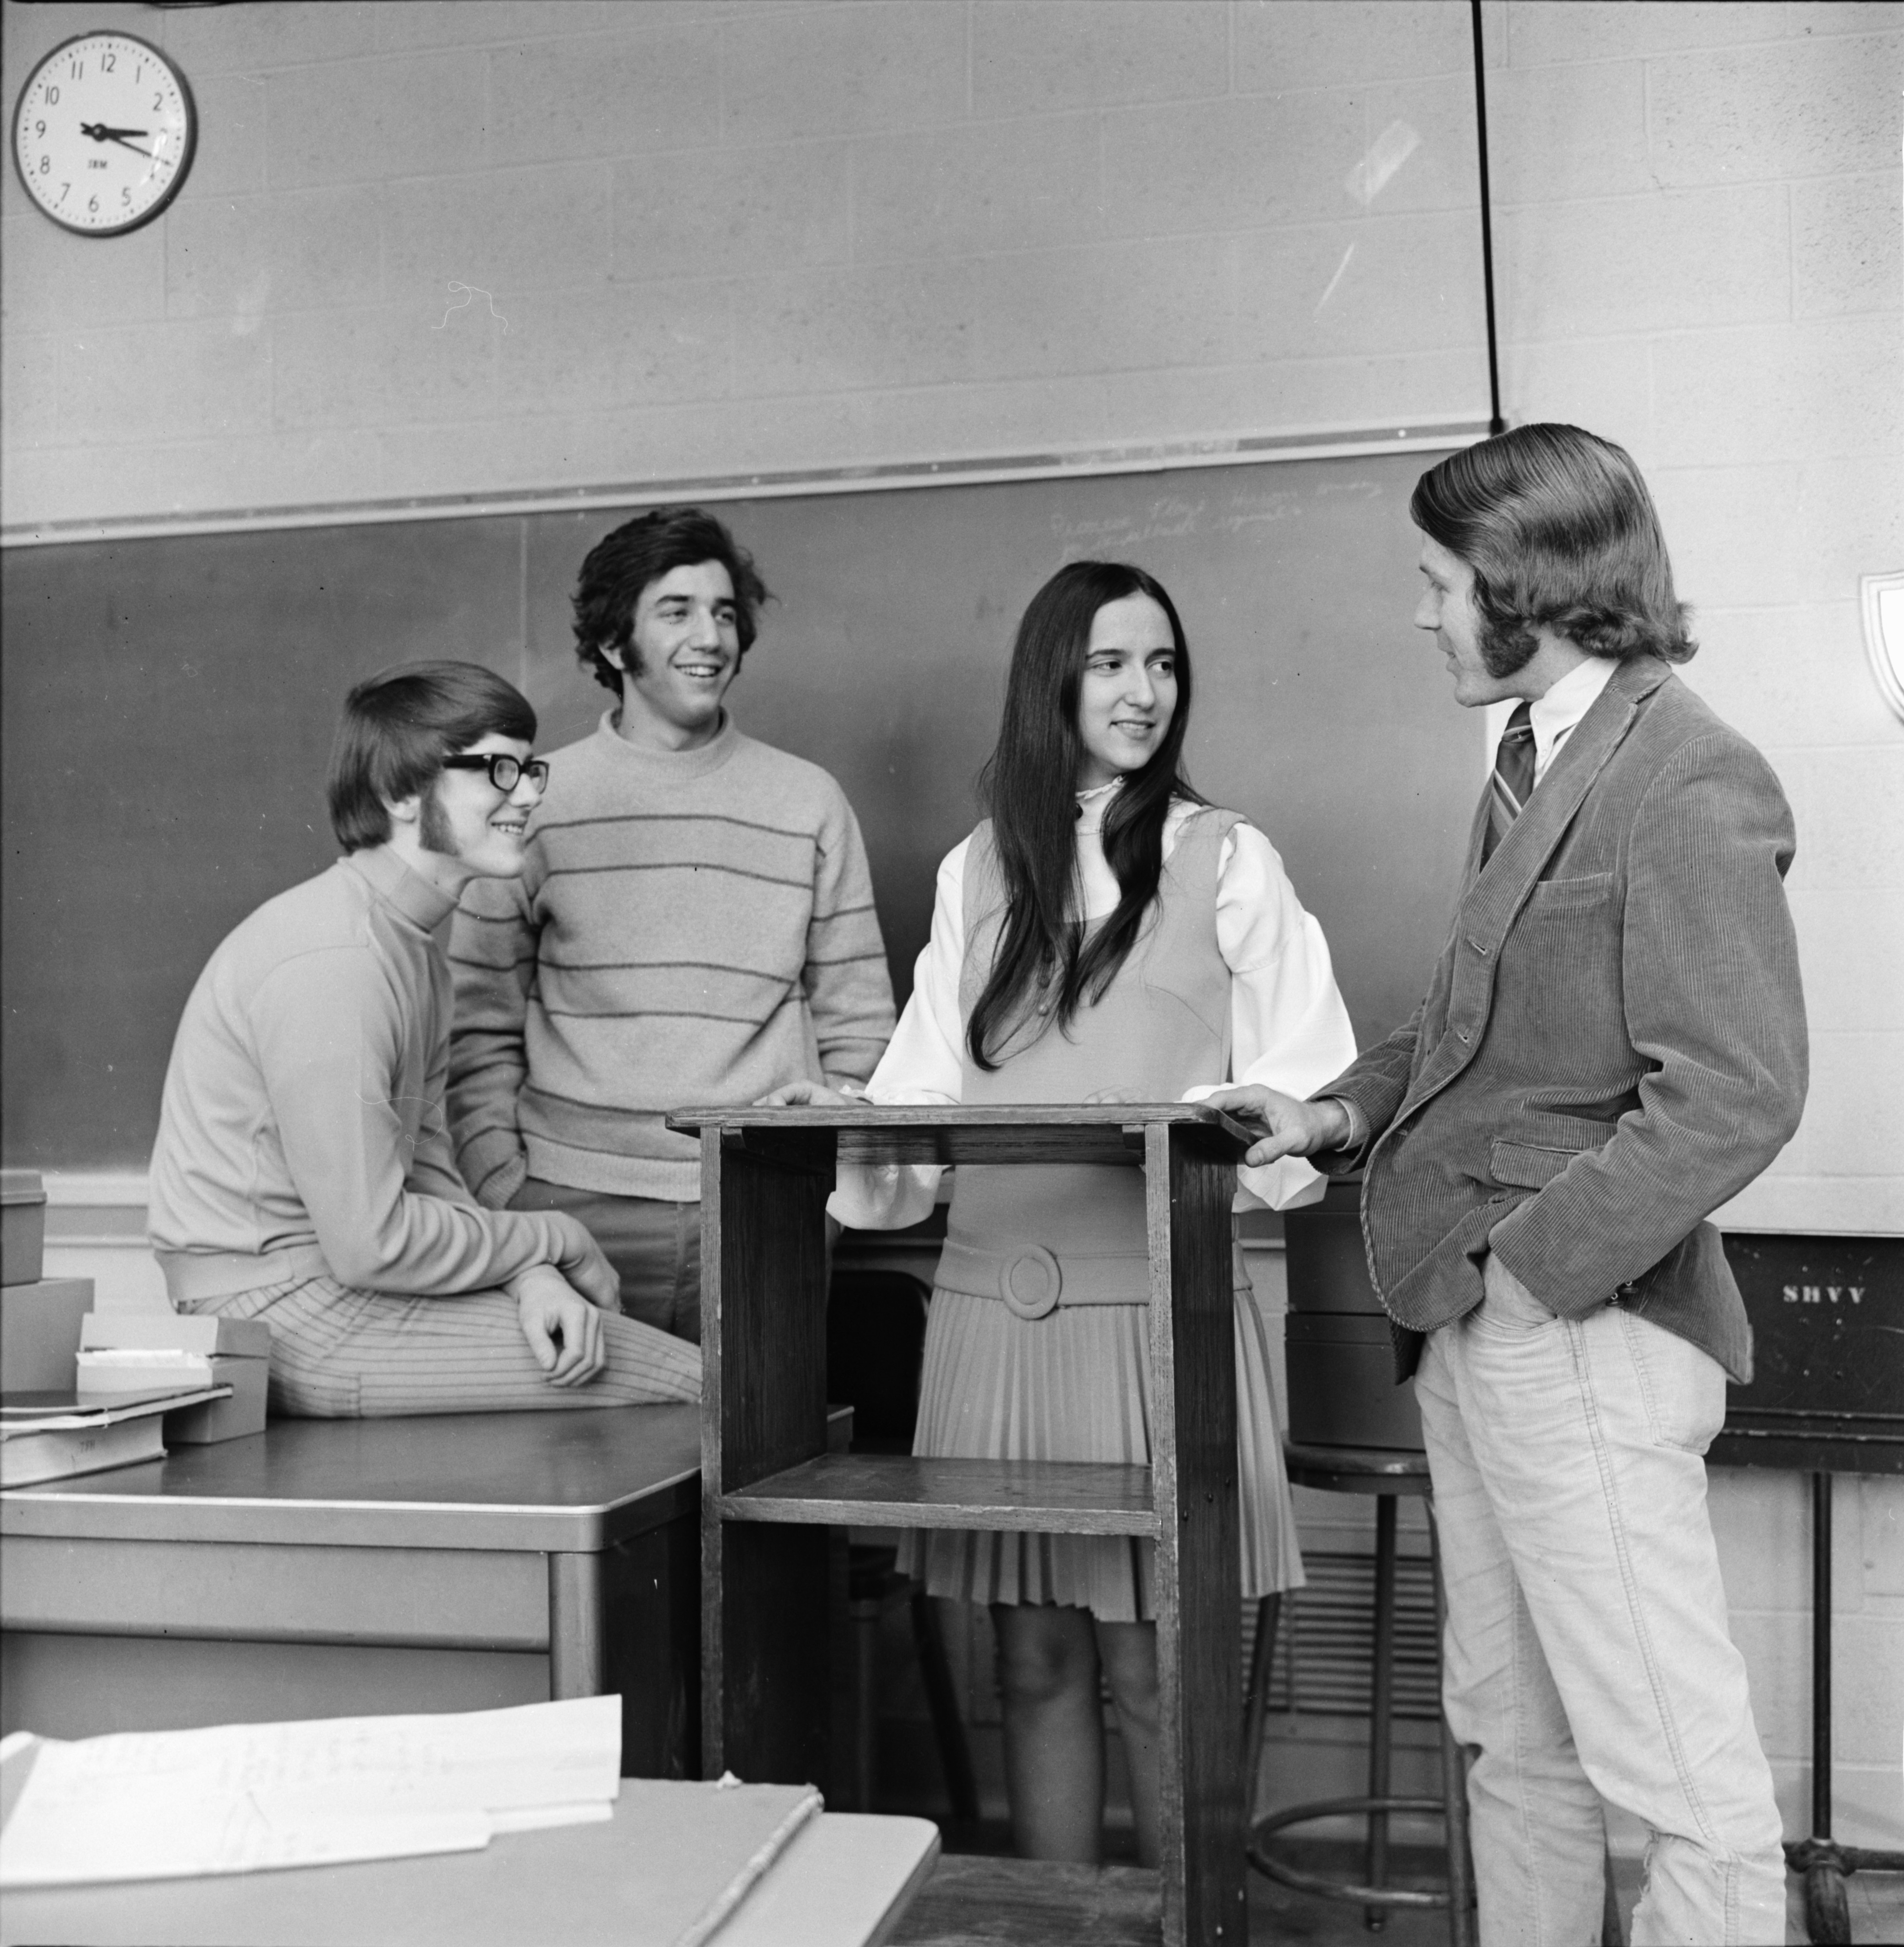 Pioneer High School Debaters, March 1970 image